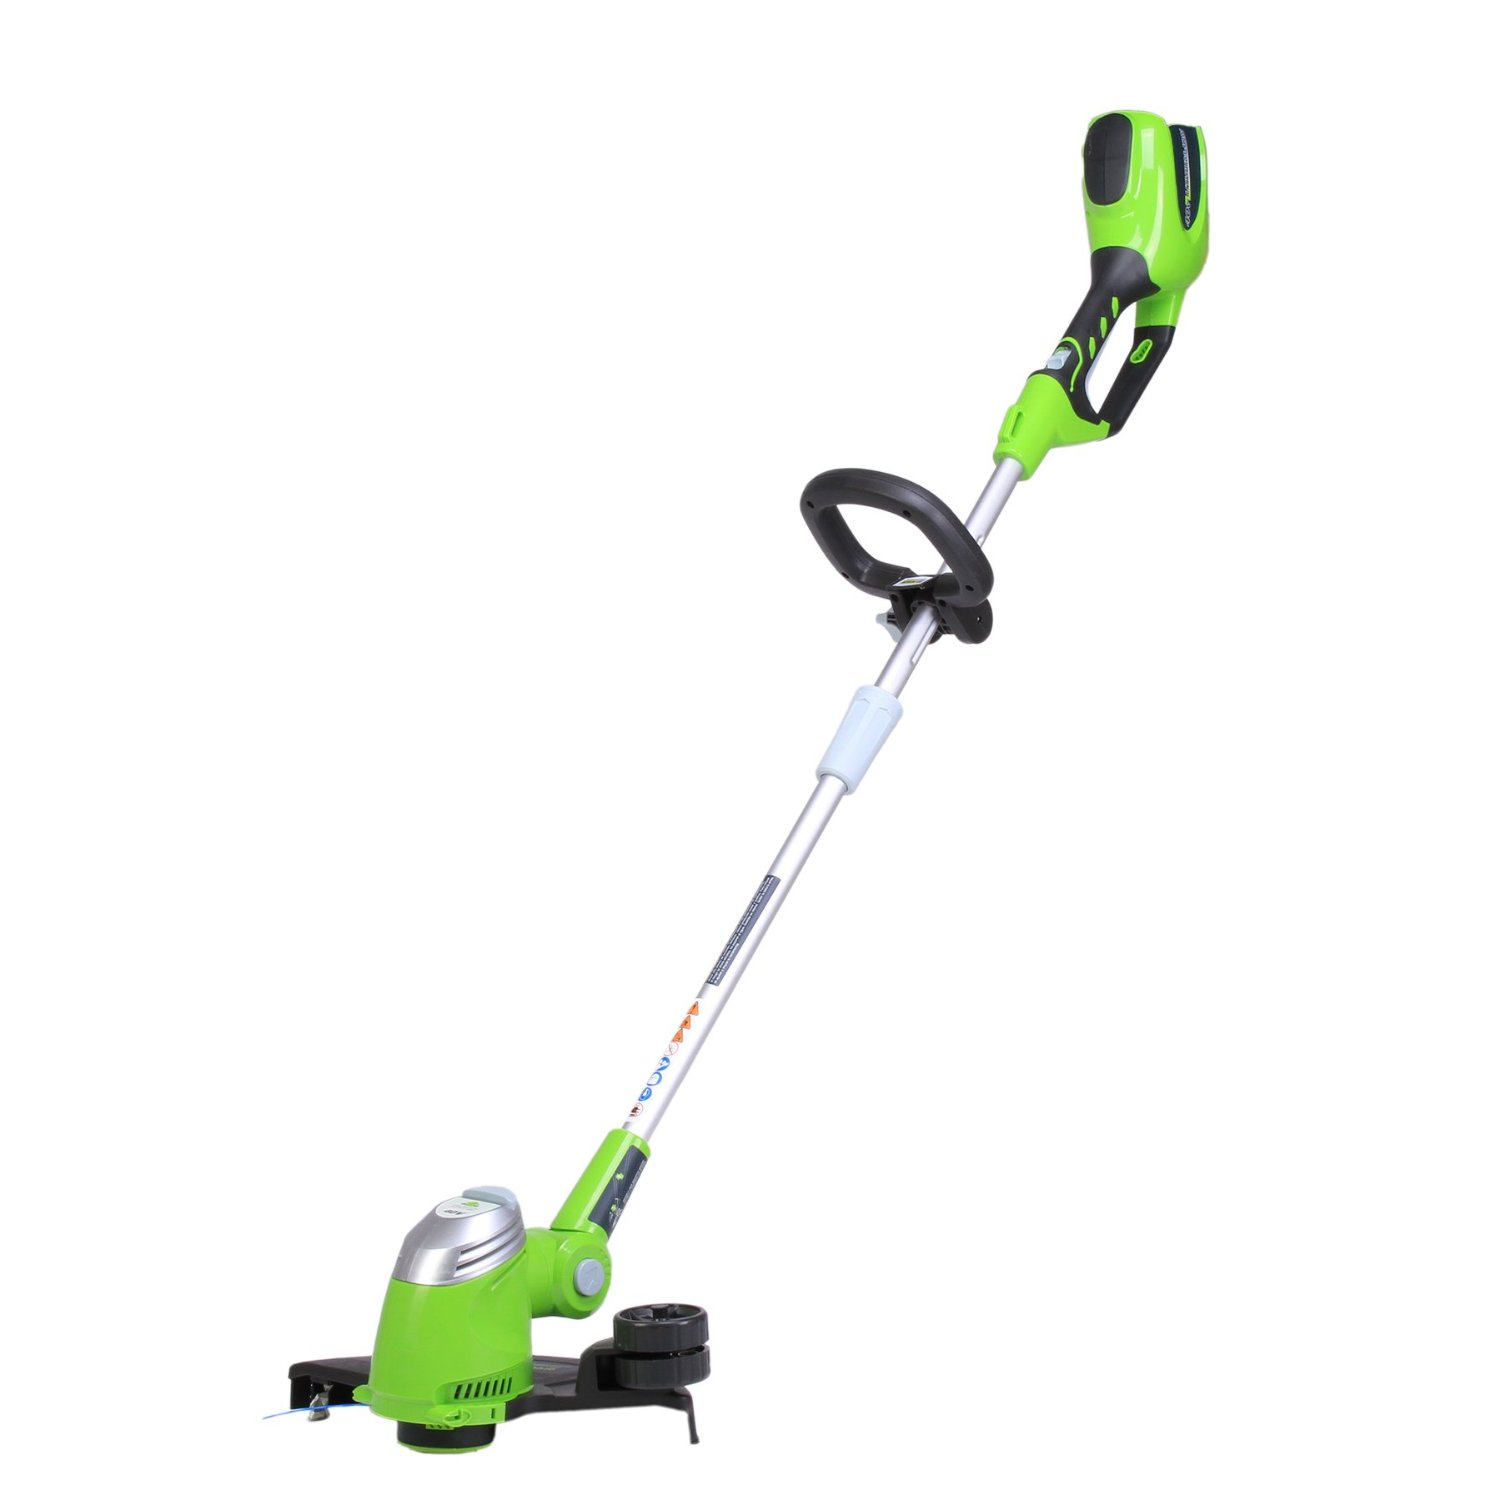 GreenWorks 21332 G-Max Cordless Weed Trimmer